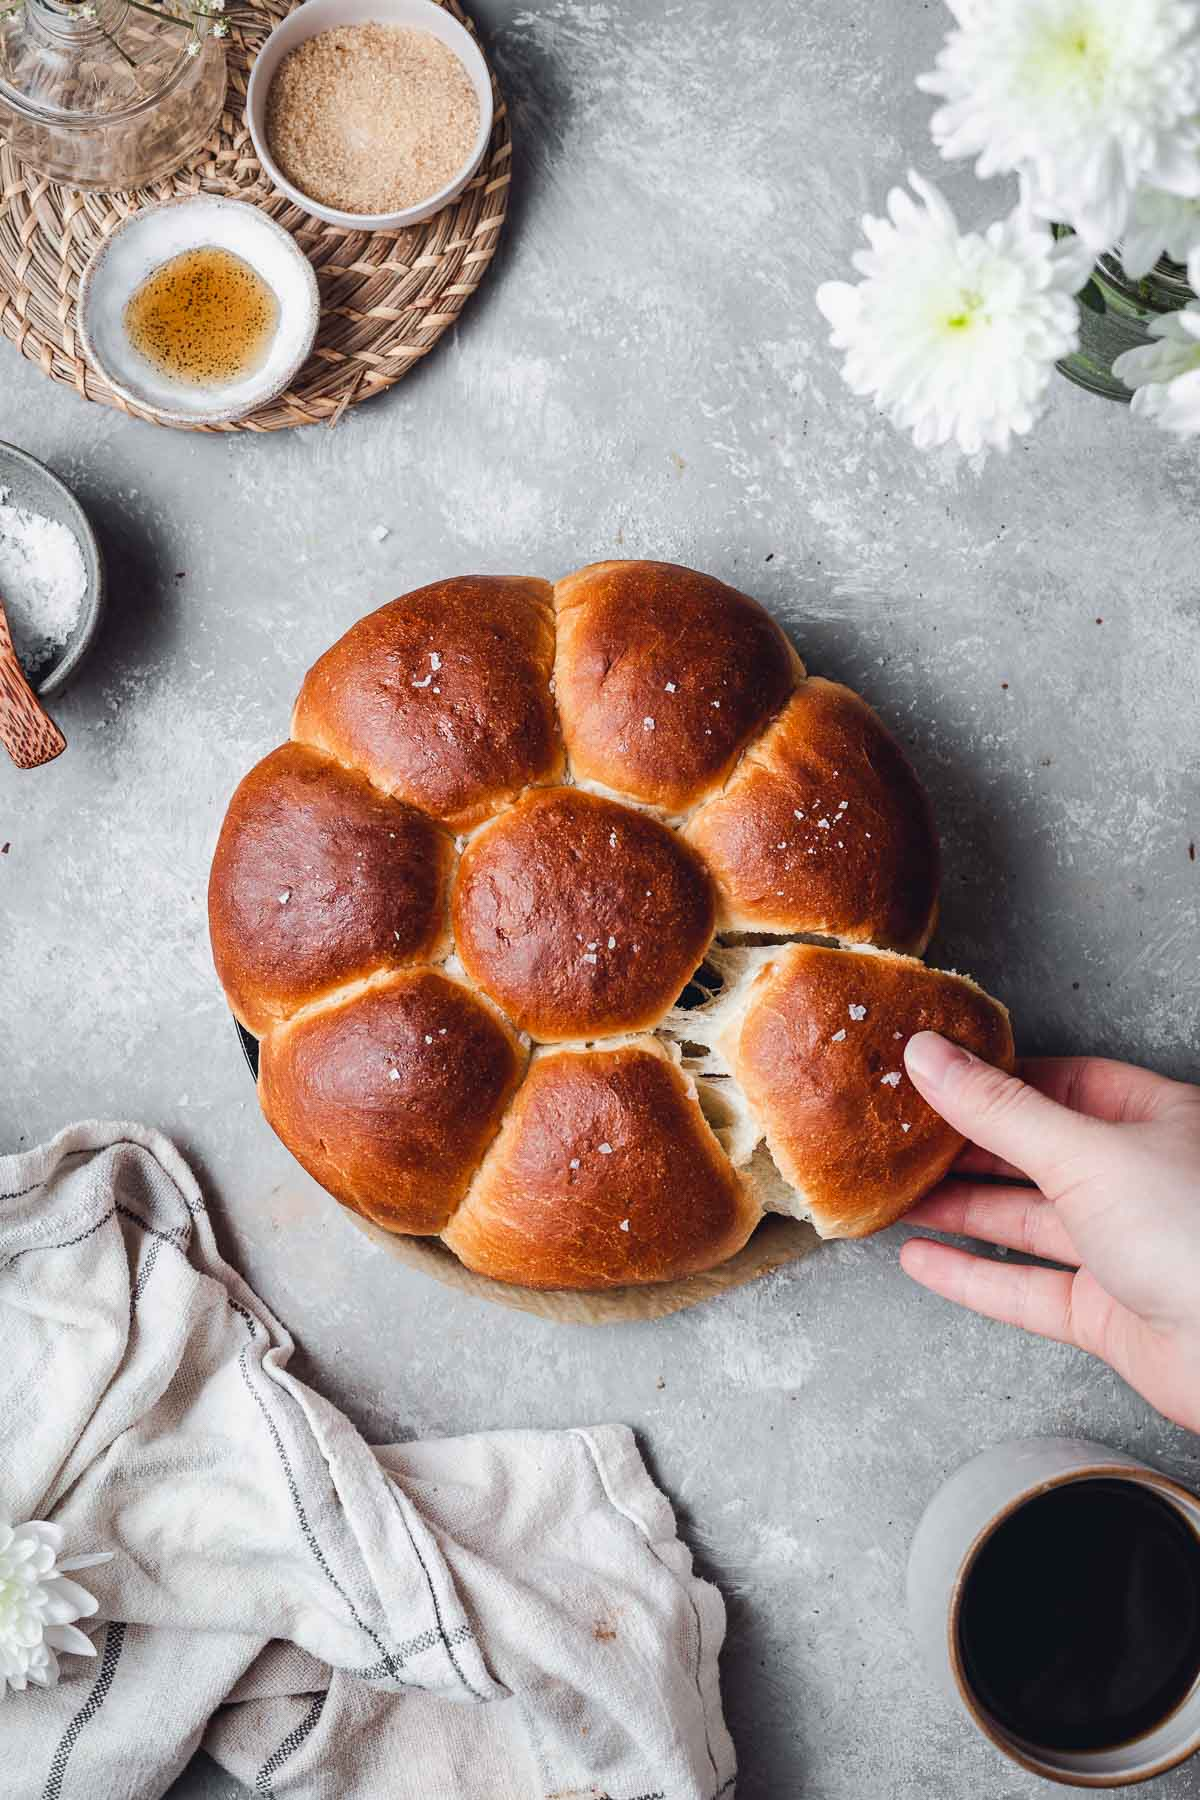 An overhead view of dinner rolls with one hand pulling apart one roll.